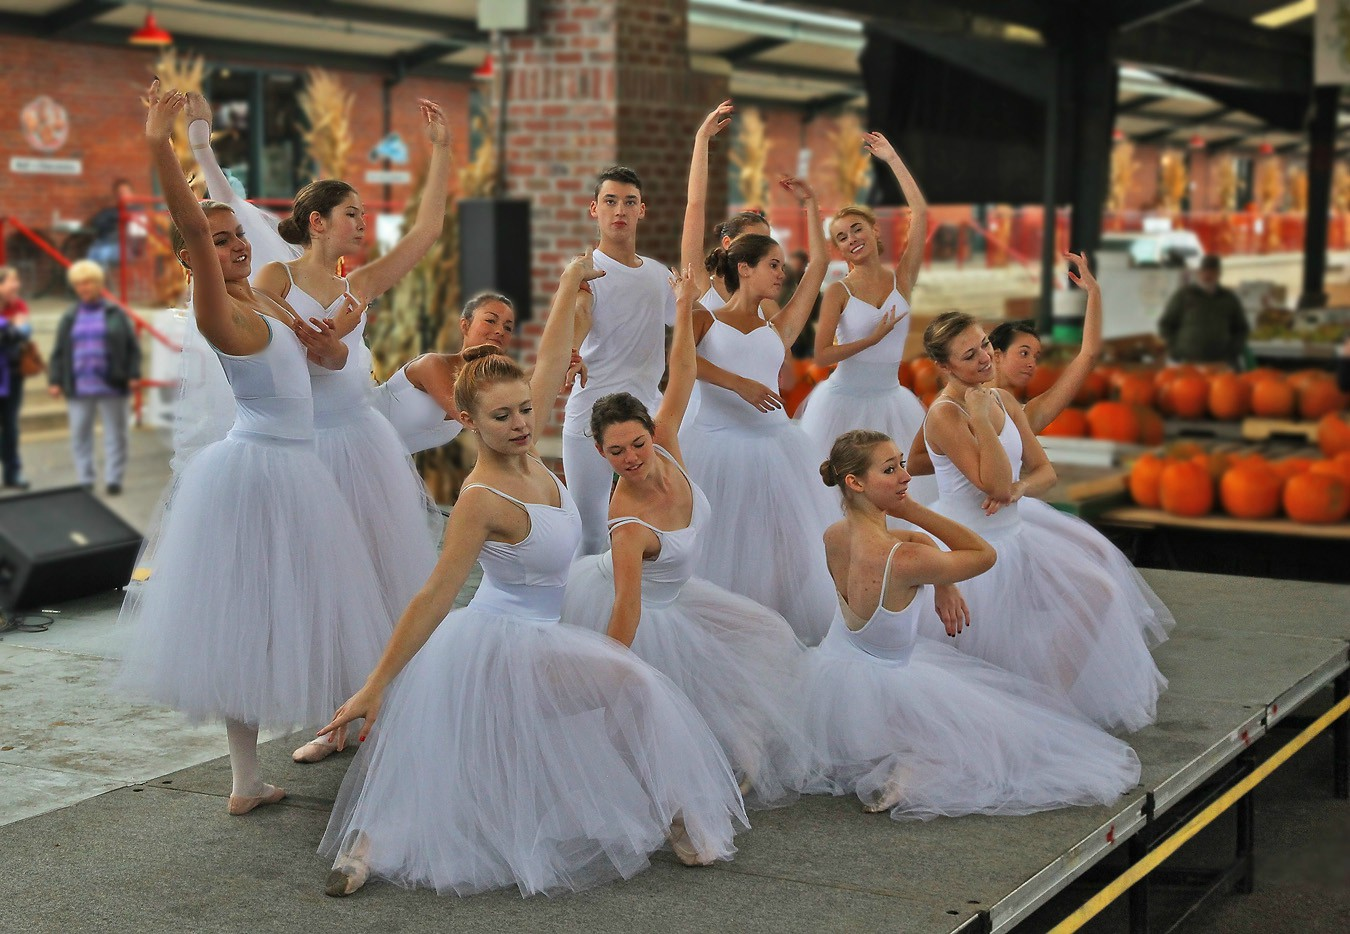 ballet at farmer s market img aw author sava greg gregory and verena